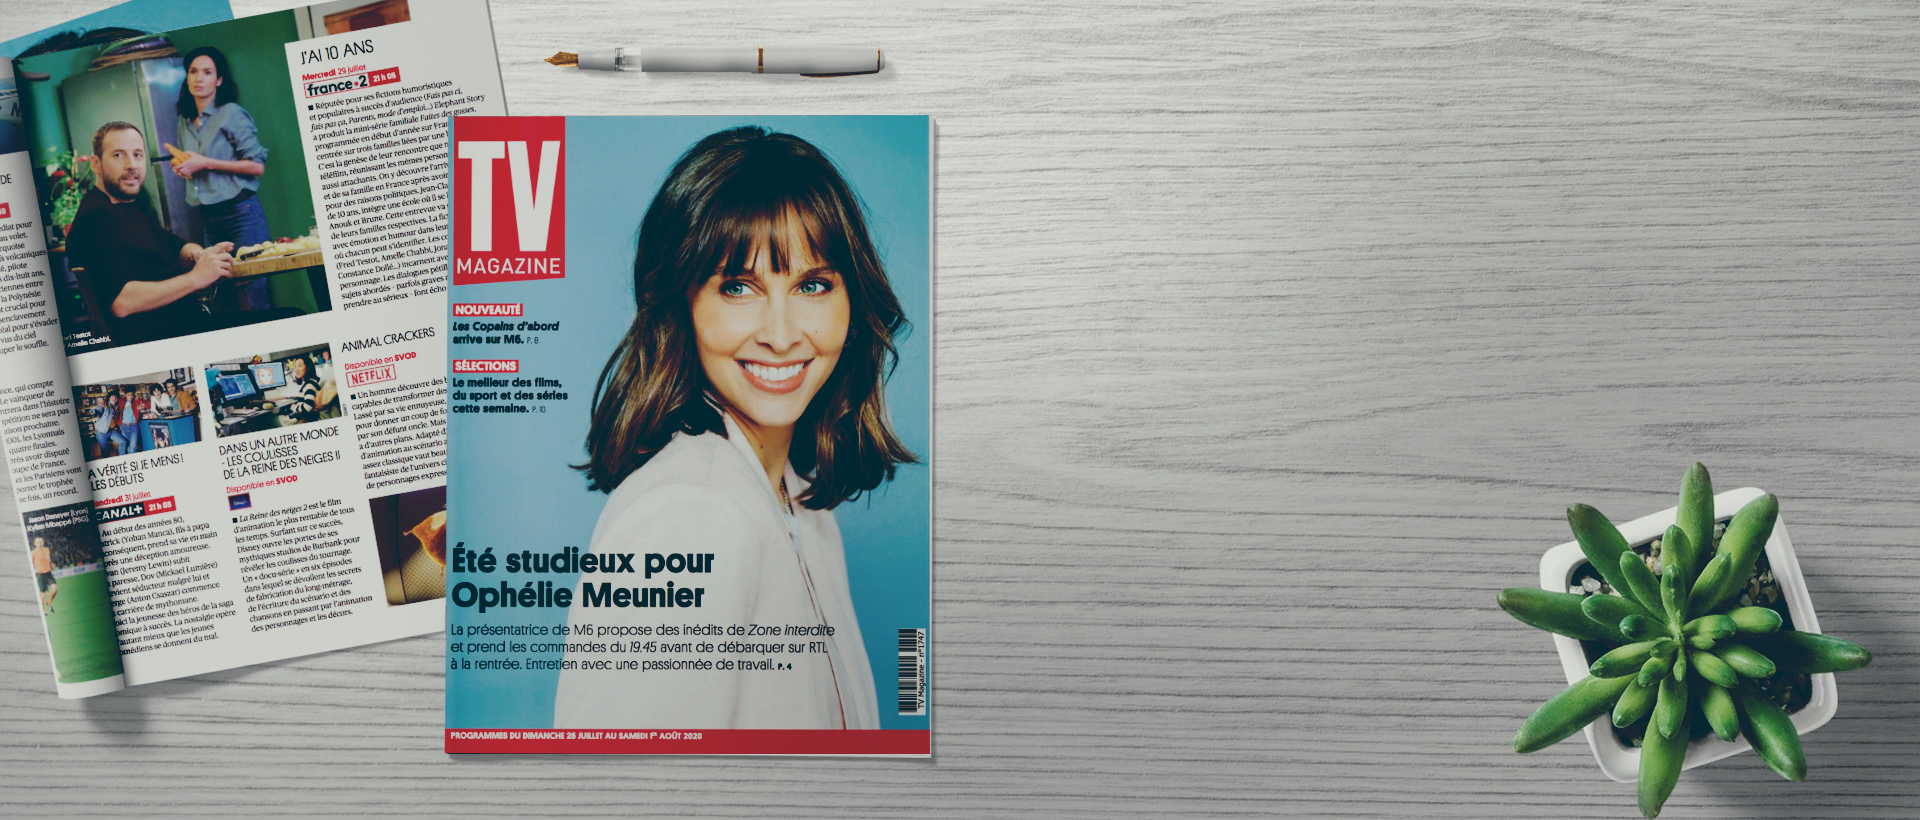 TV MAG OUEST